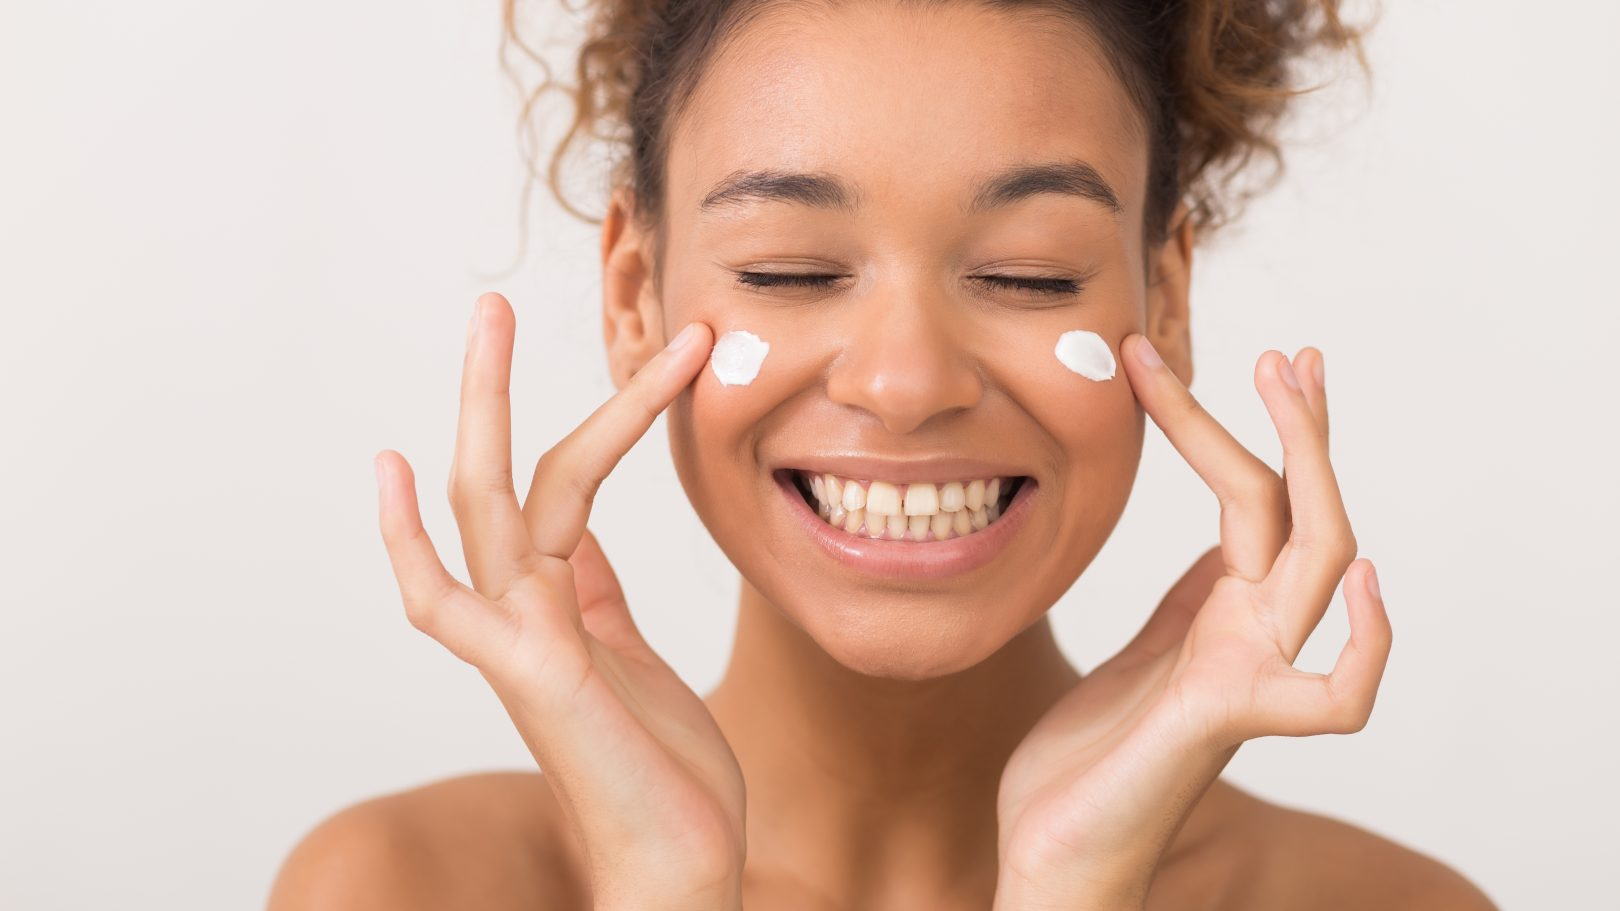 This moisturizer is an esthetician favorite